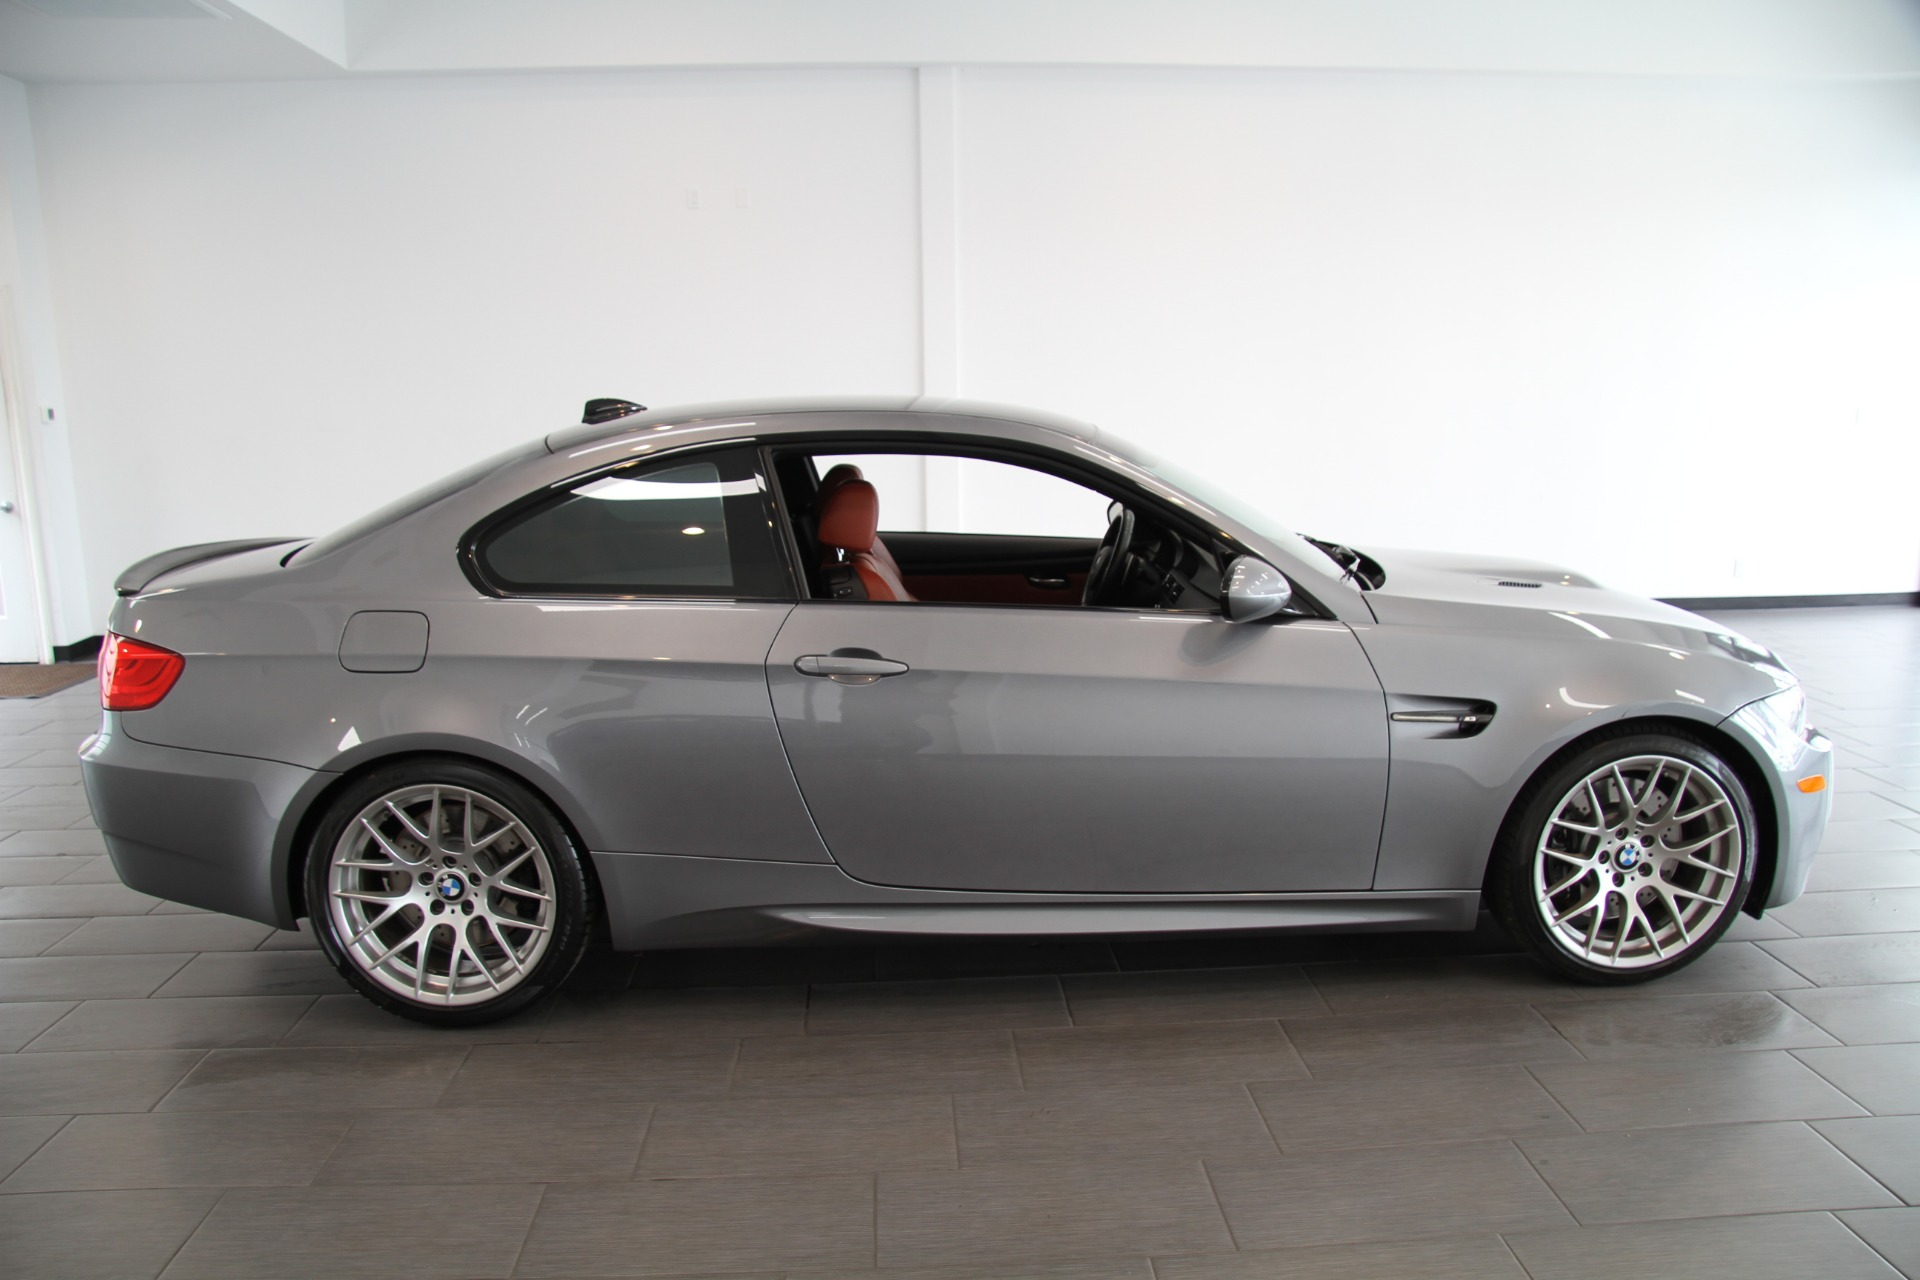 2011 bmw m3 competition package stock 6135 for sale near redondo beach ca ca bmw dealer. Black Bedroom Furniture Sets. Home Design Ideas